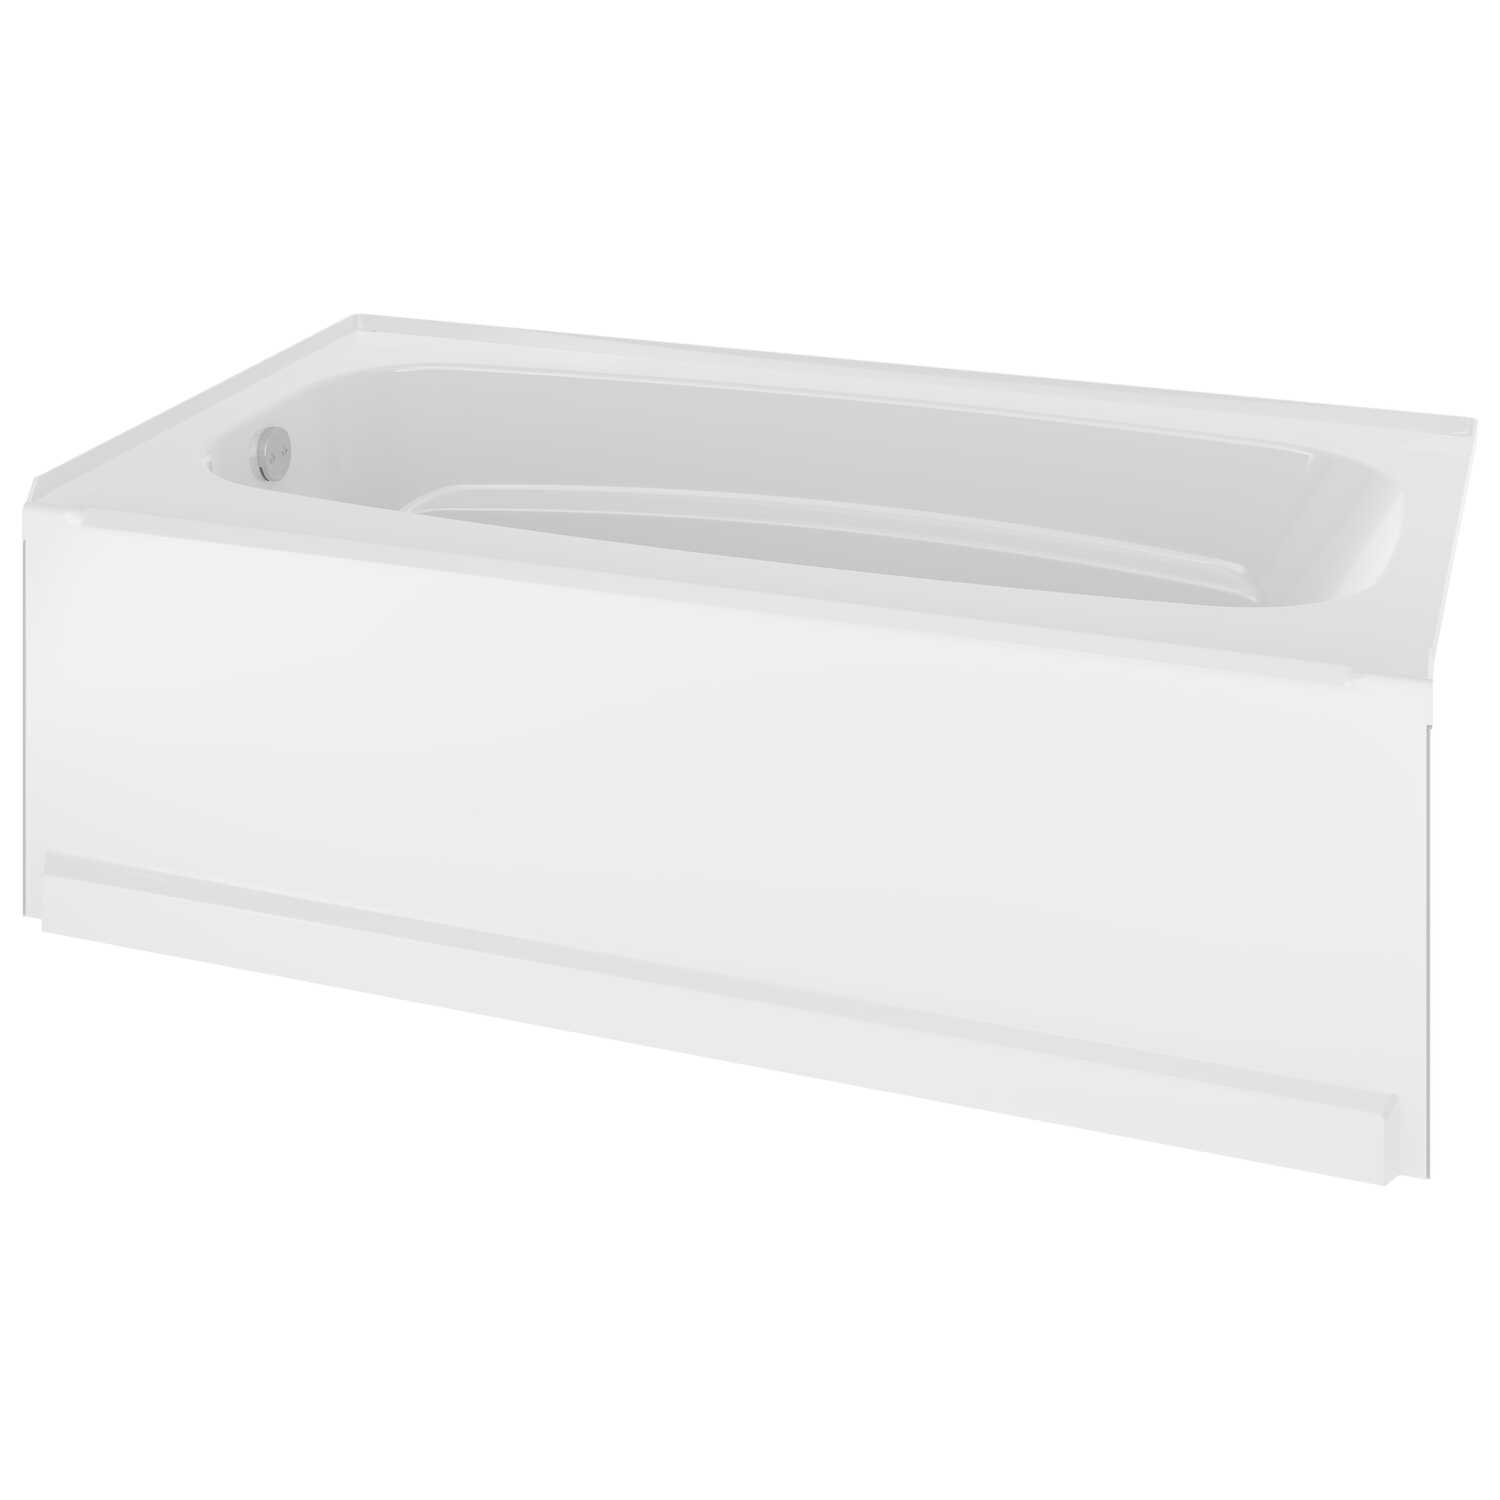 Delta Bathing System  Classic  18 in. H x 60 in. W x 32-1/2 in. L White  Rectangle  Acrylic  Bathtub